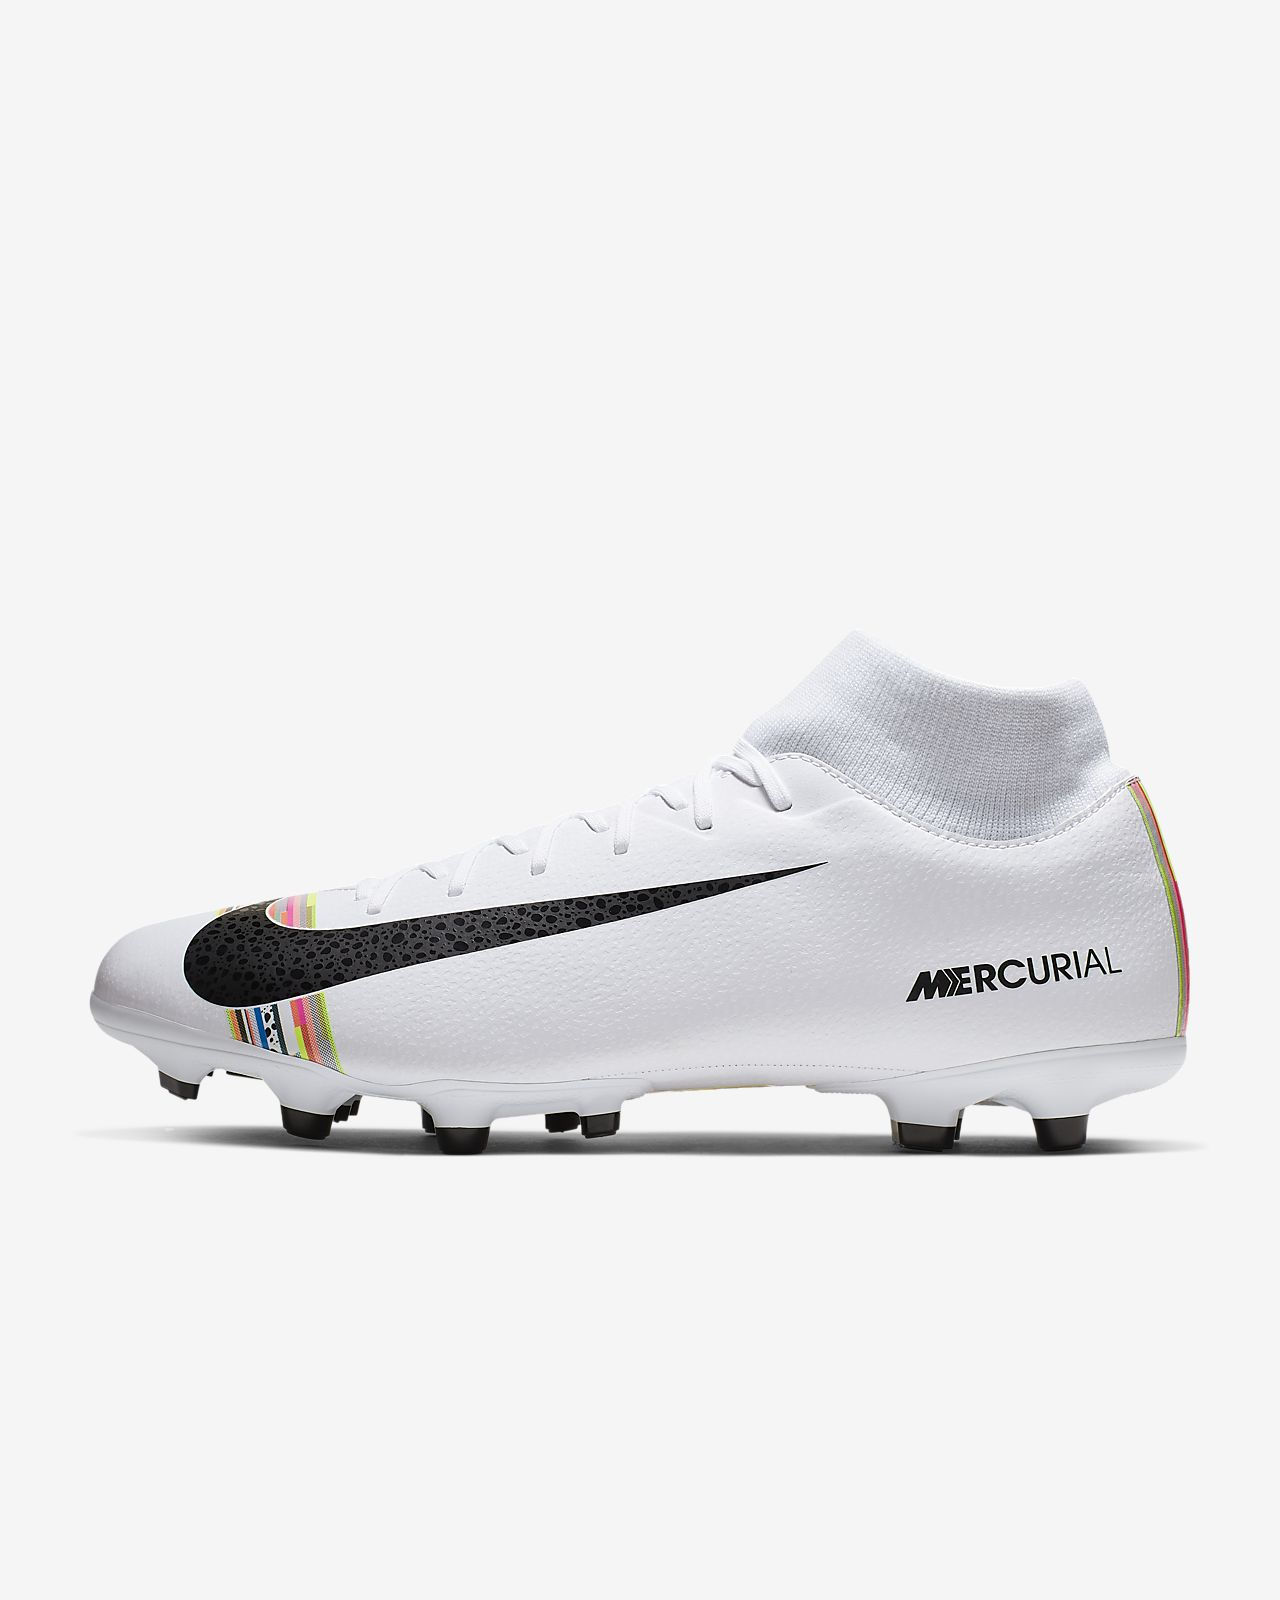 d33d06af8 Multi-Ground Football Boot. Nike Mercurial Superfly 6 Academy LVL UP MG